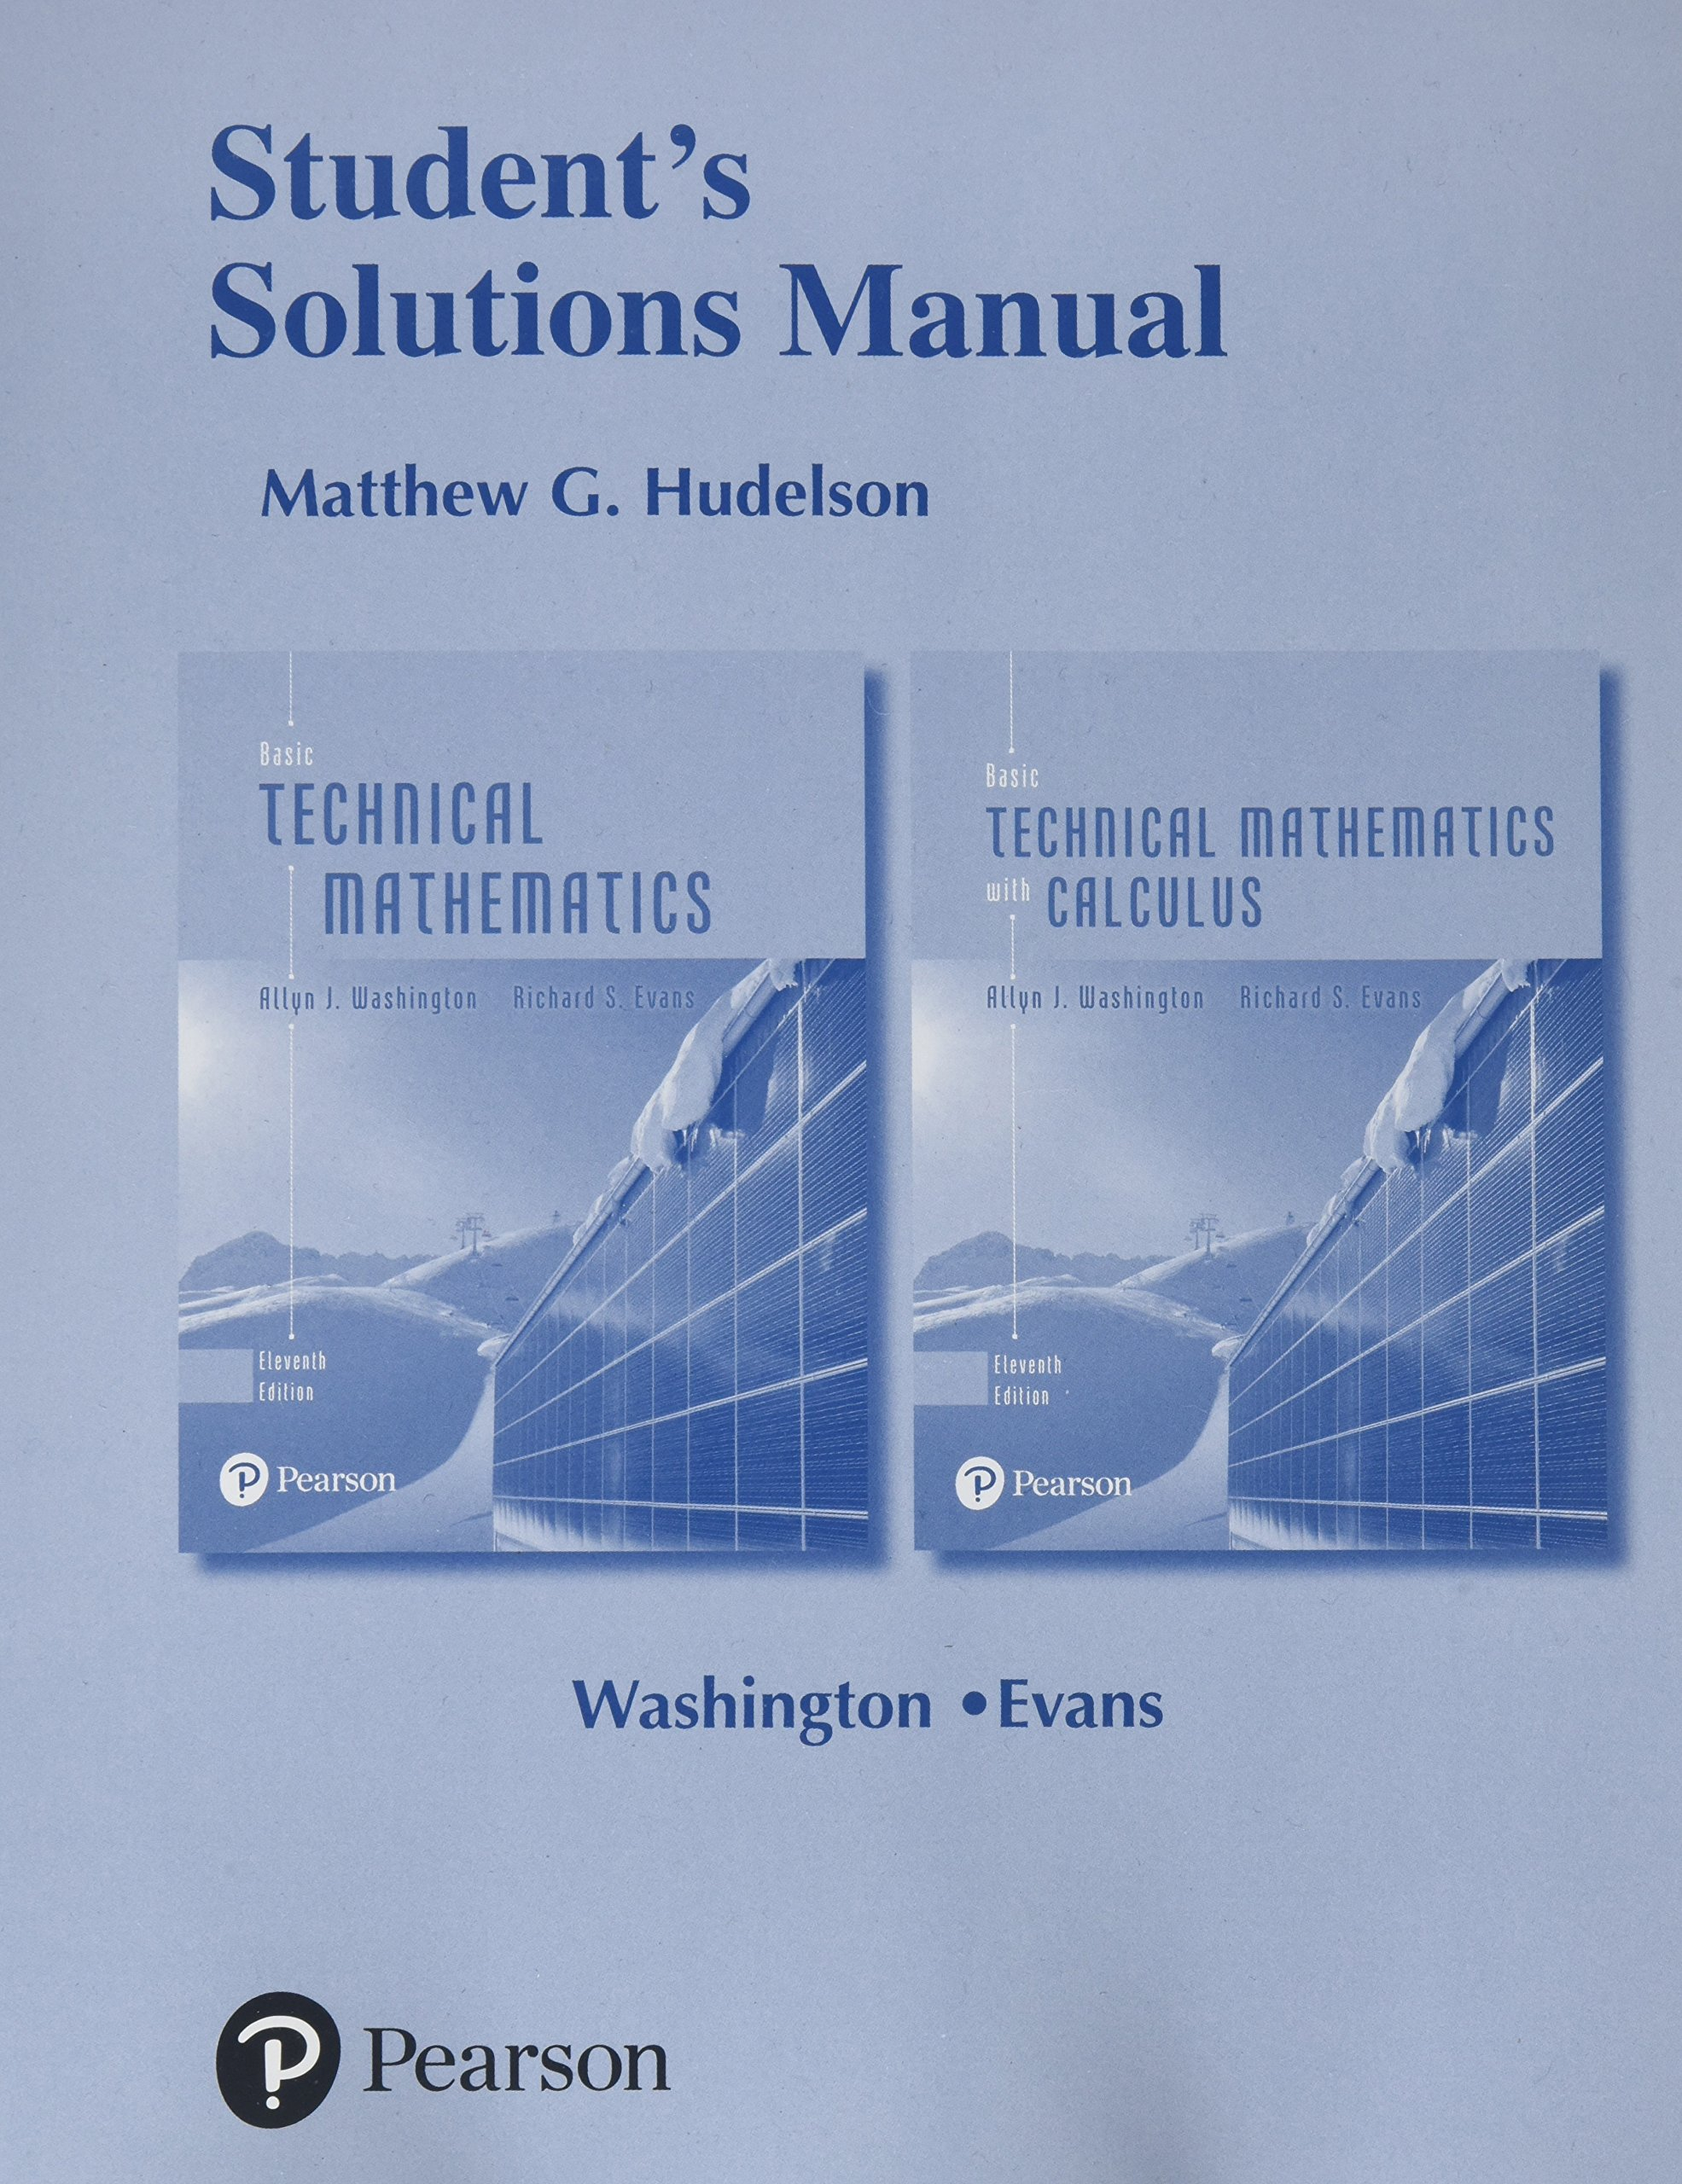 Buy Student Solutions Manual for Basic Technical Mathematics and Basic  Technical Mathematics with Calculus Book Online at Low Prices in India |  Student ...